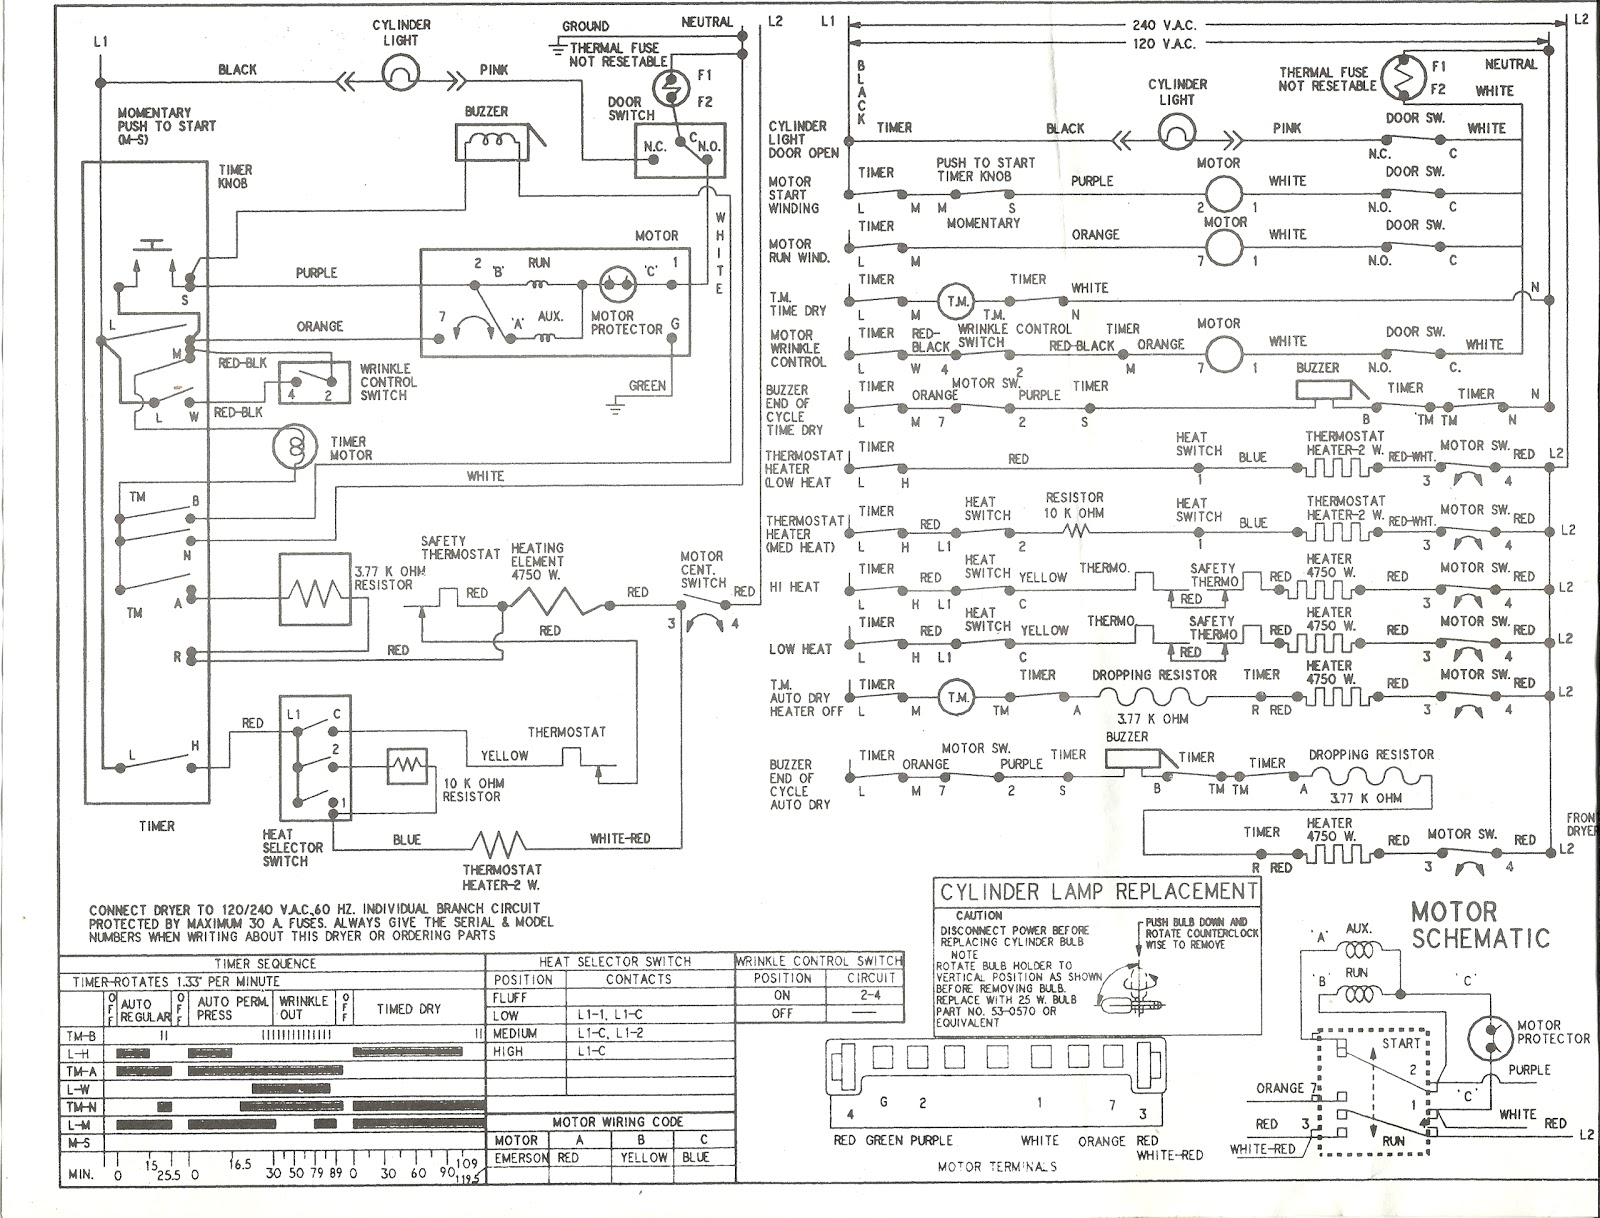 scan0001 series wiring diagram wiring subwoofers in series \u2022 wiring toyota landcruiser 100 series wiring diagram download at n-0.co